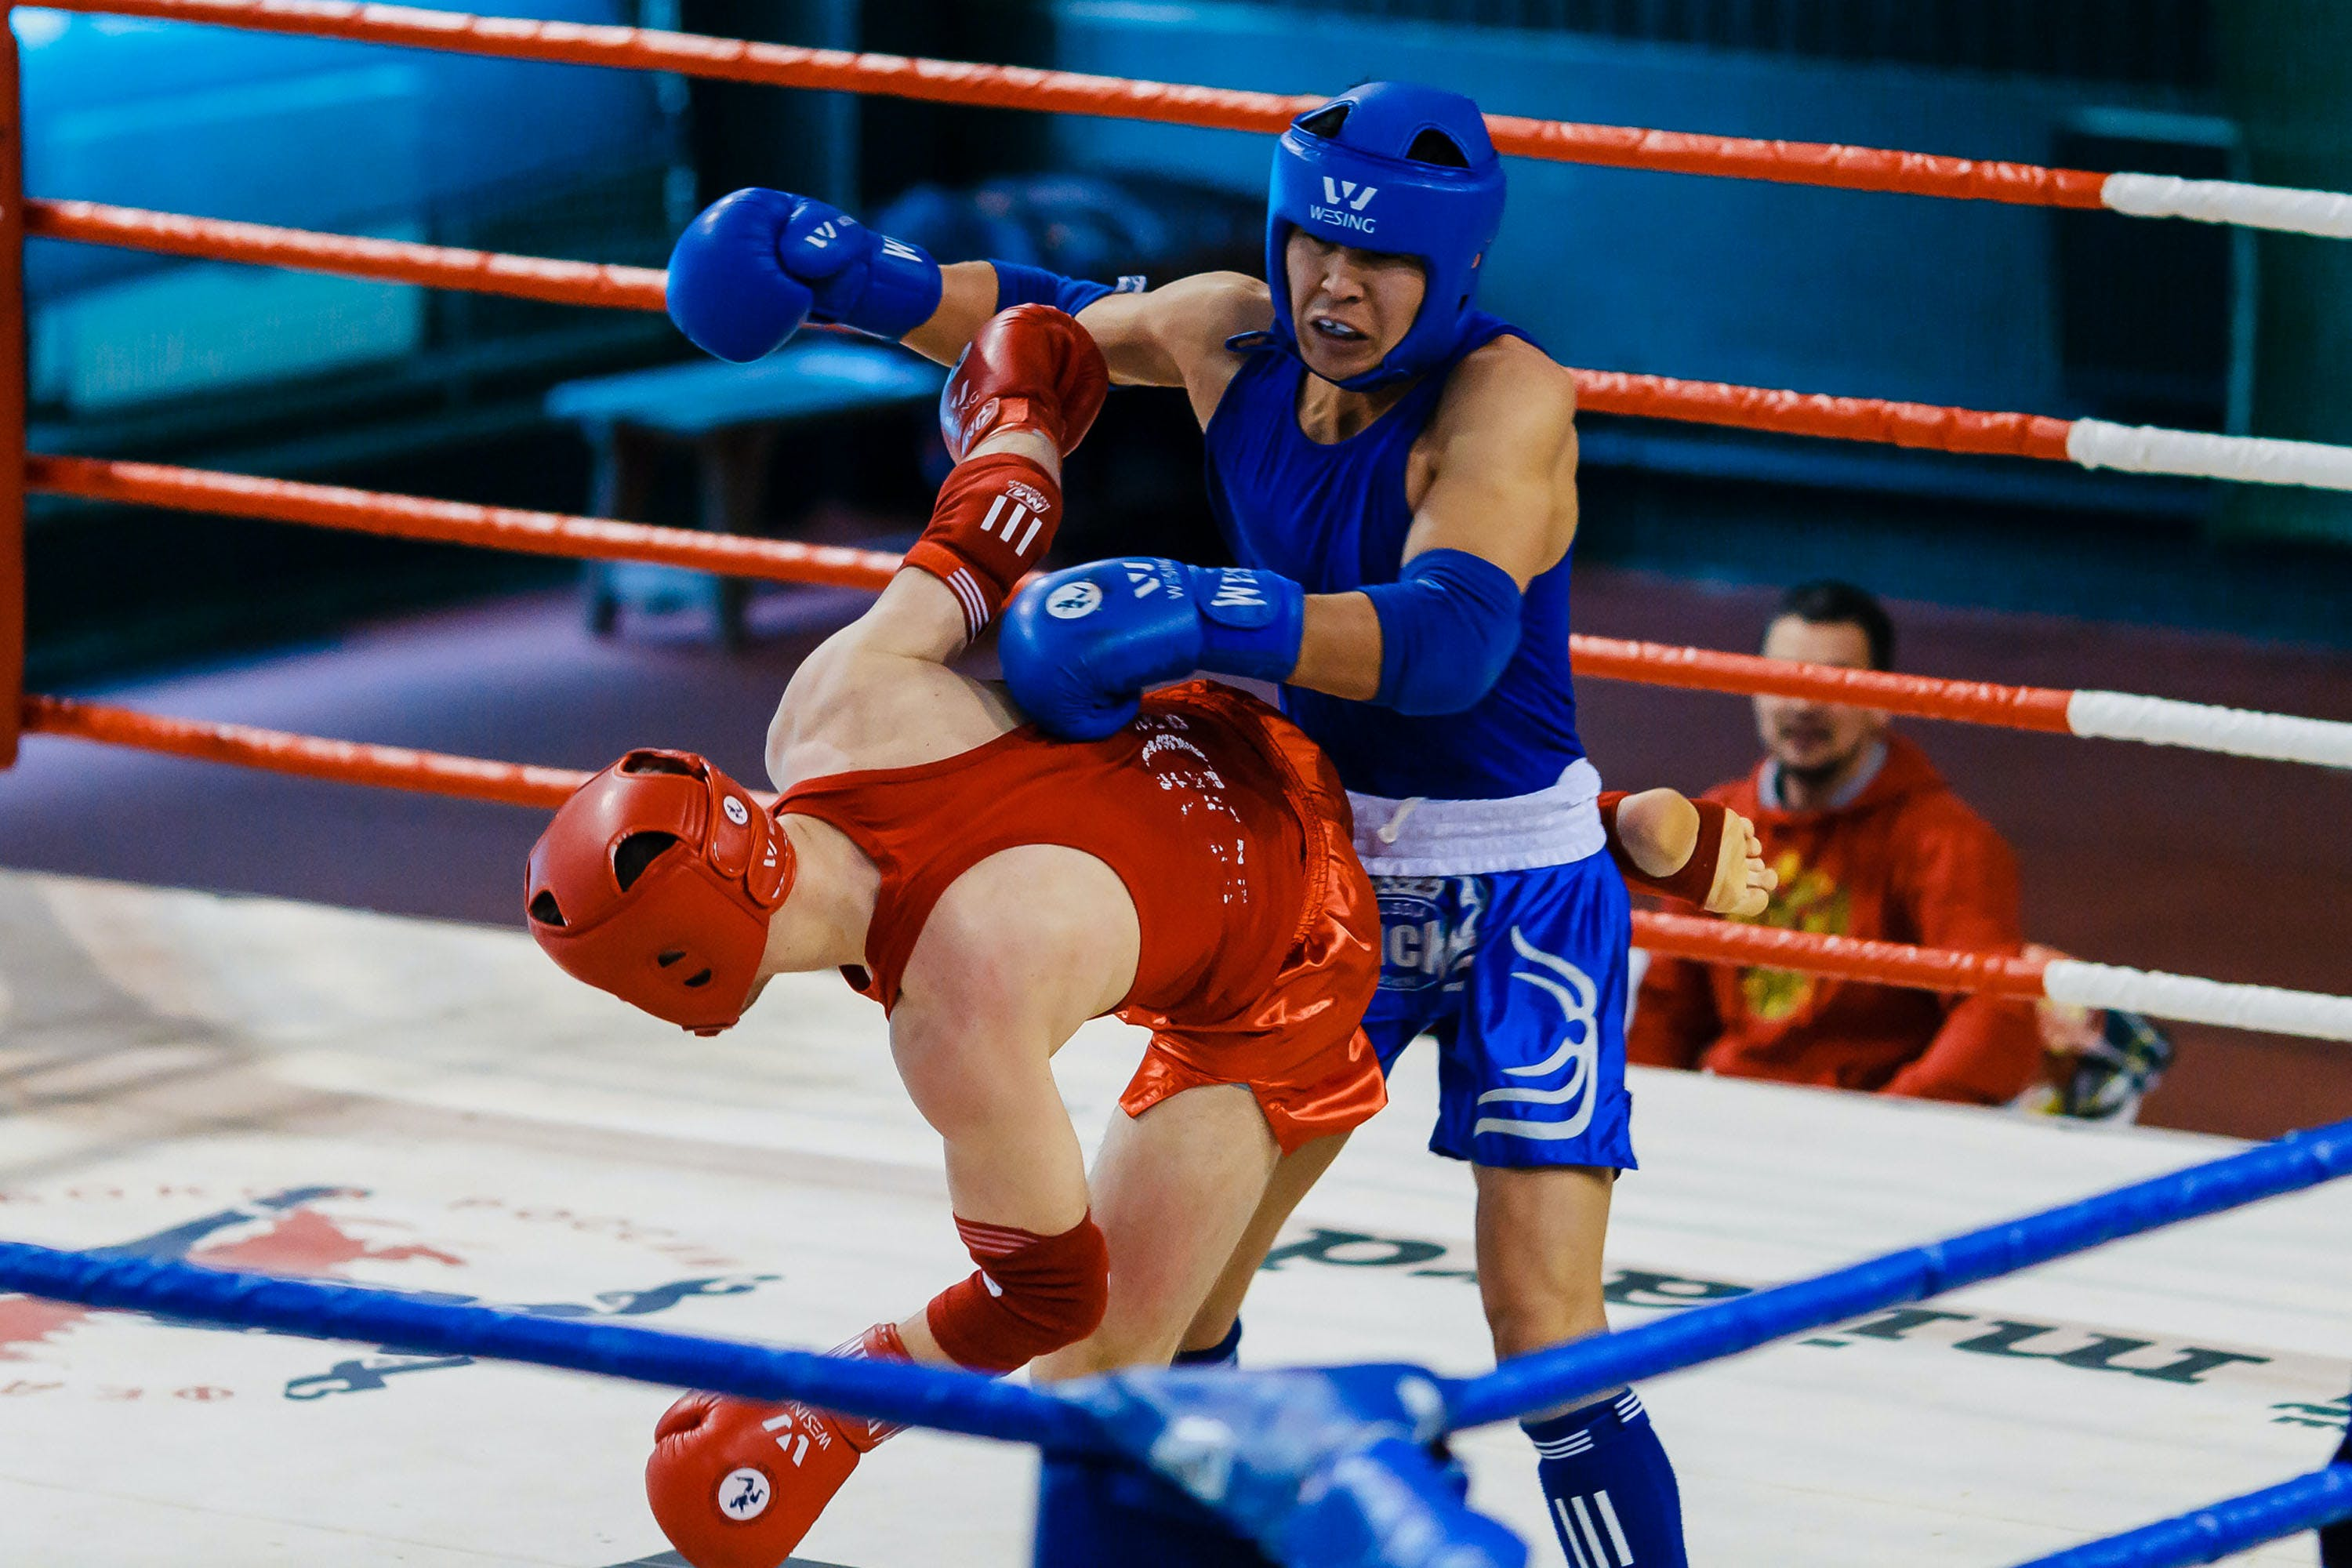 Two Fighters Doing Sparring Match